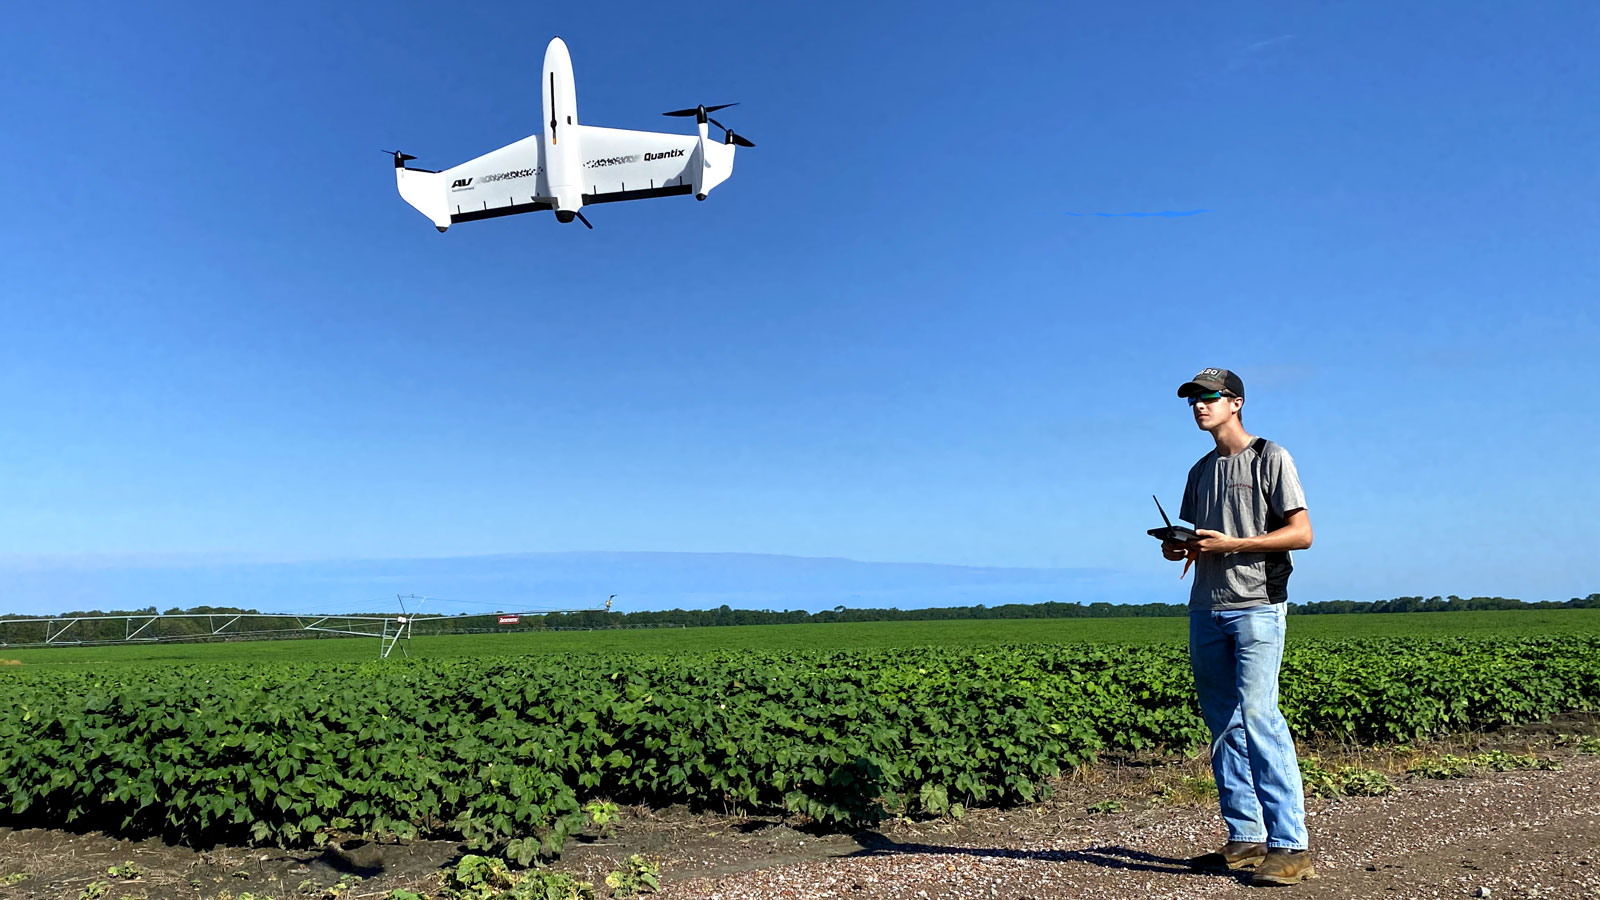 the Quantix Mapper drone flying over the cotton field